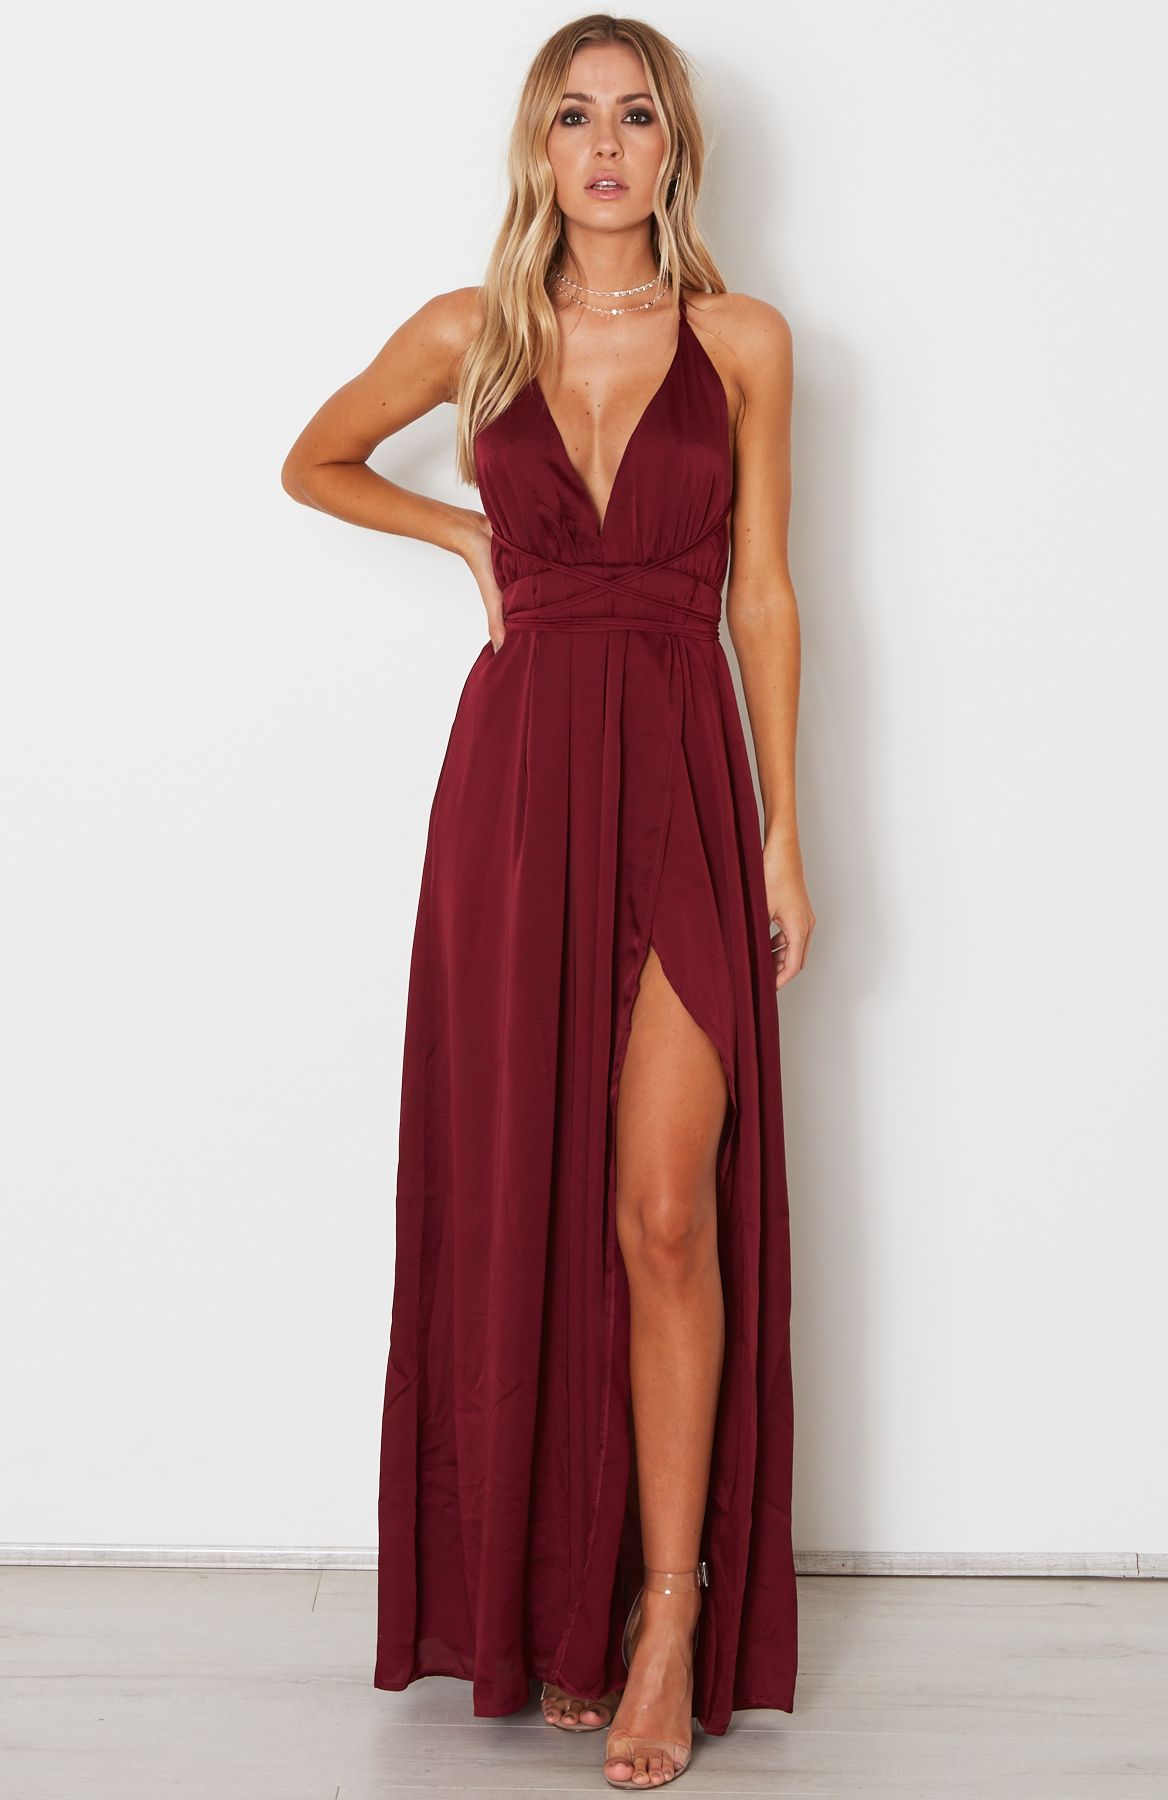 a6babc93 Halter Neck Straps Deep V Neck Burgundy Prom Dresses with High Side Split,  Sexy Chiffon